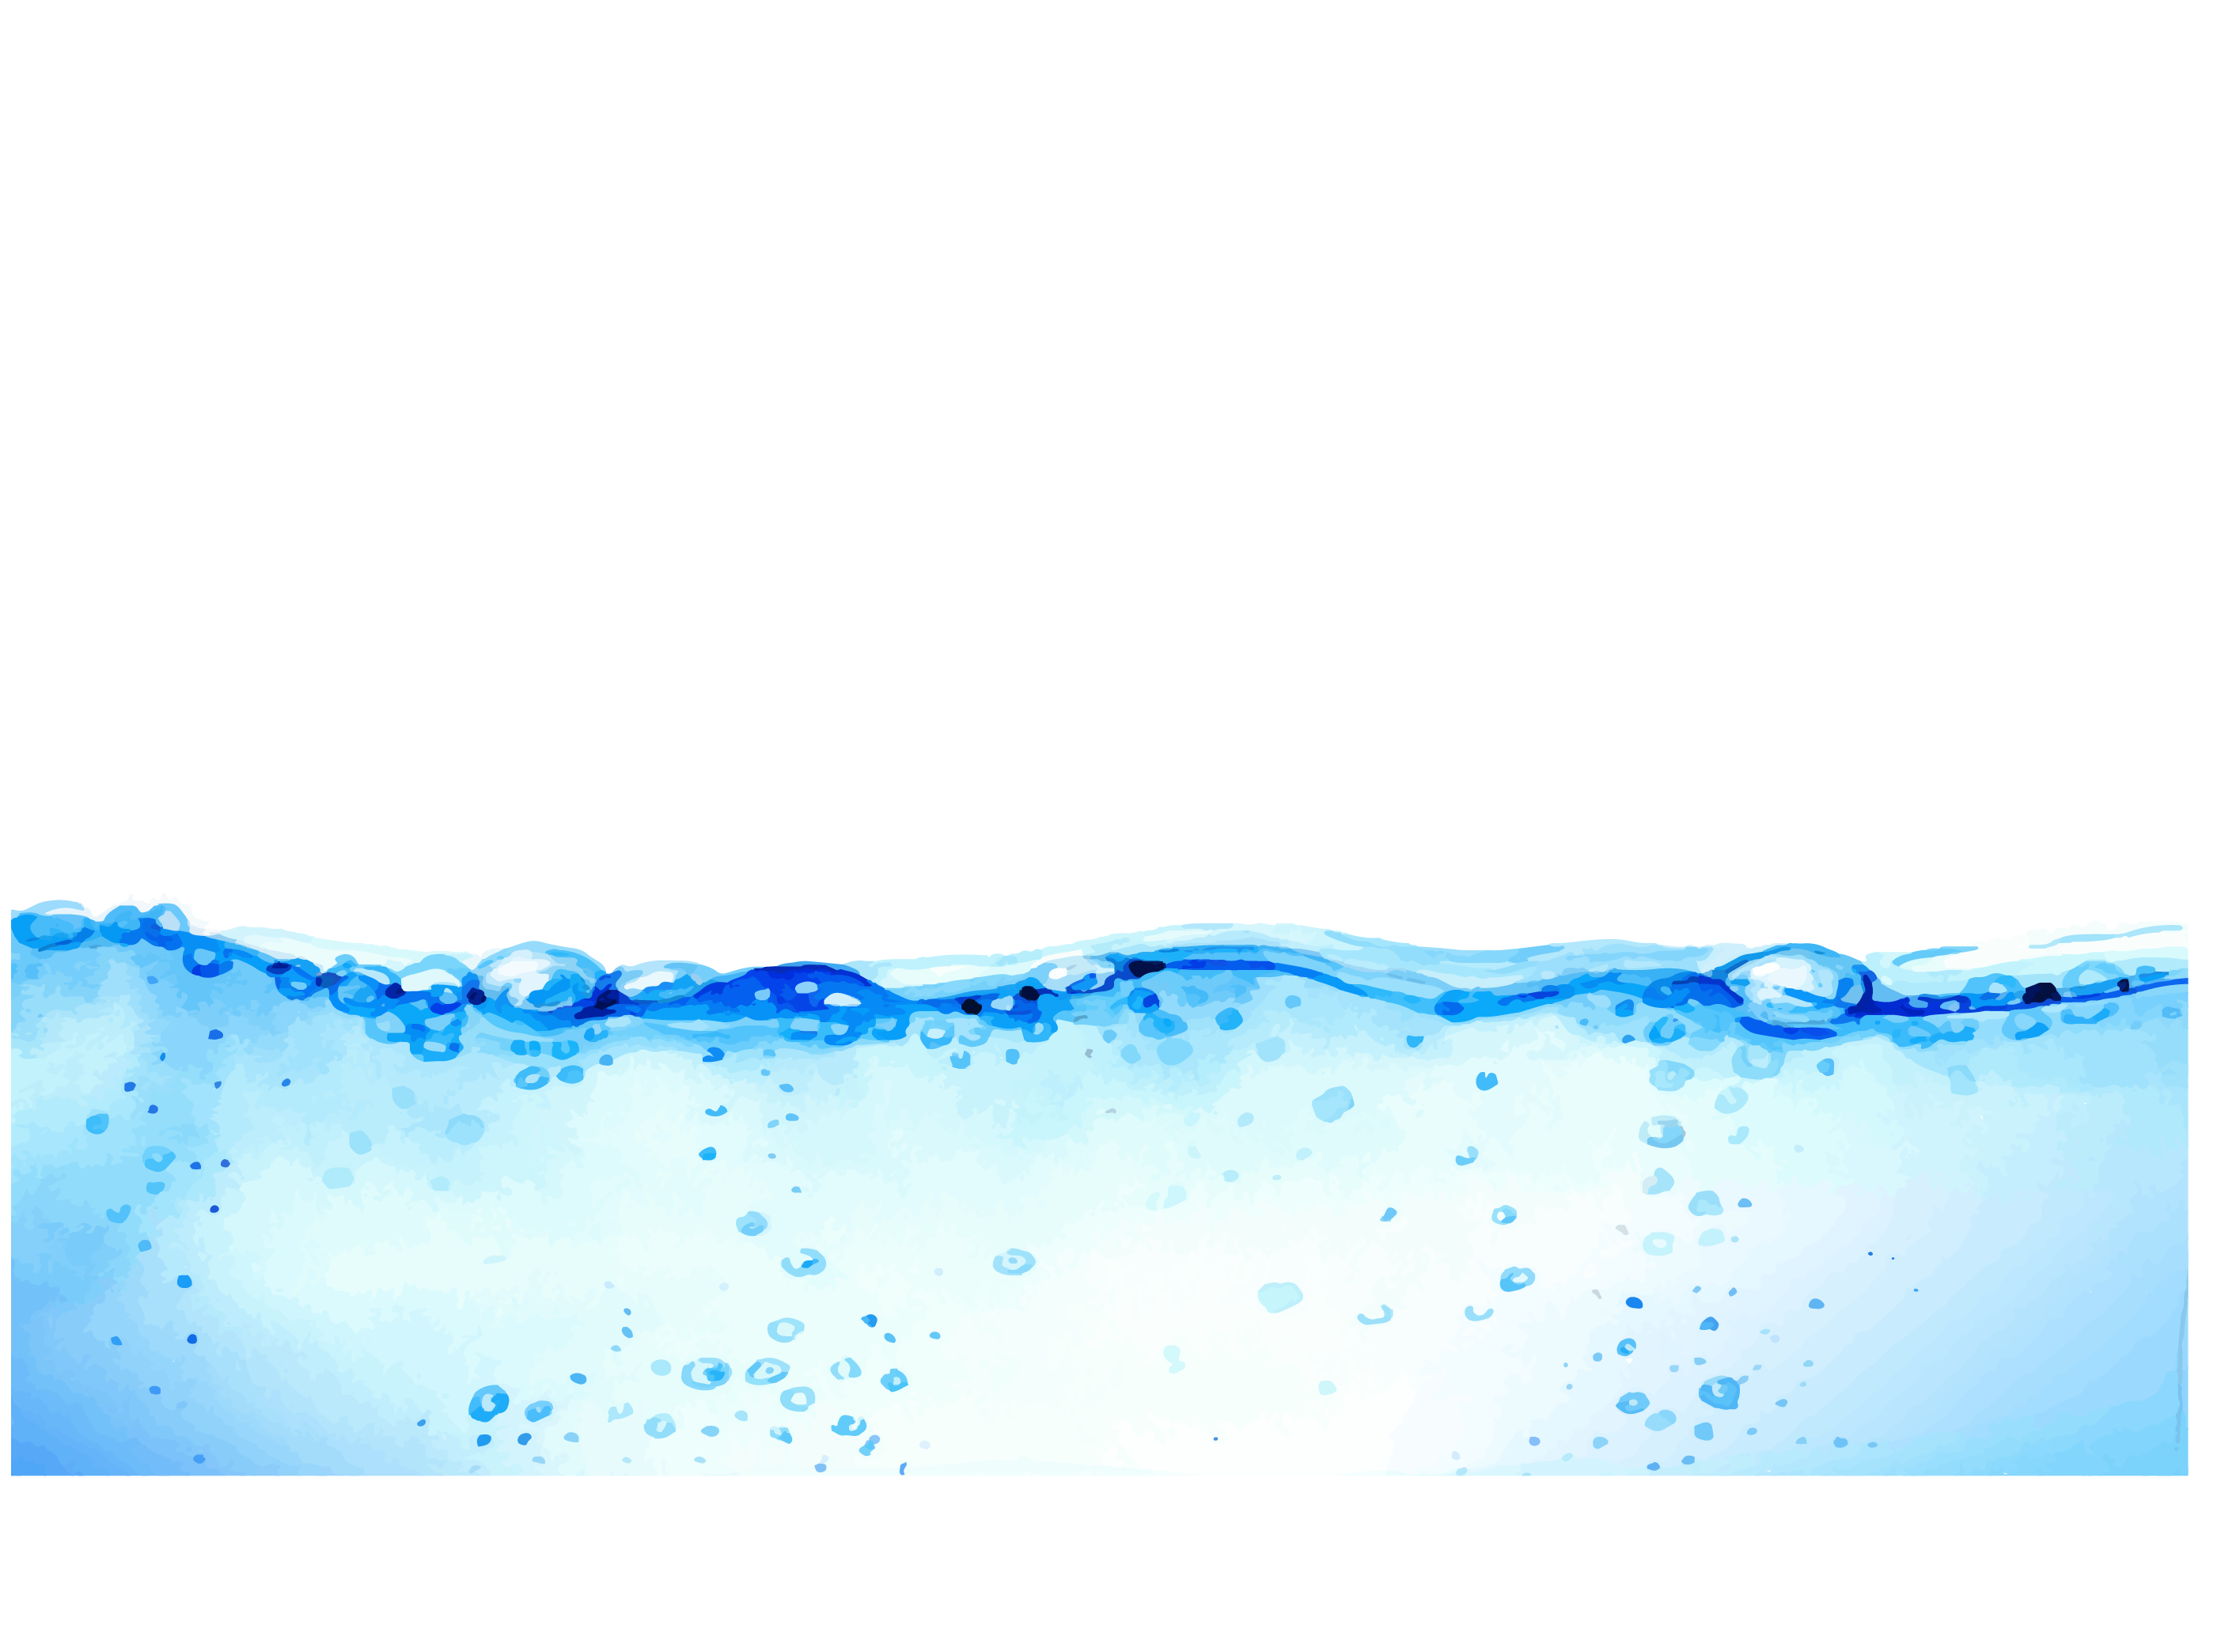 water png images transparent water pictures #9581